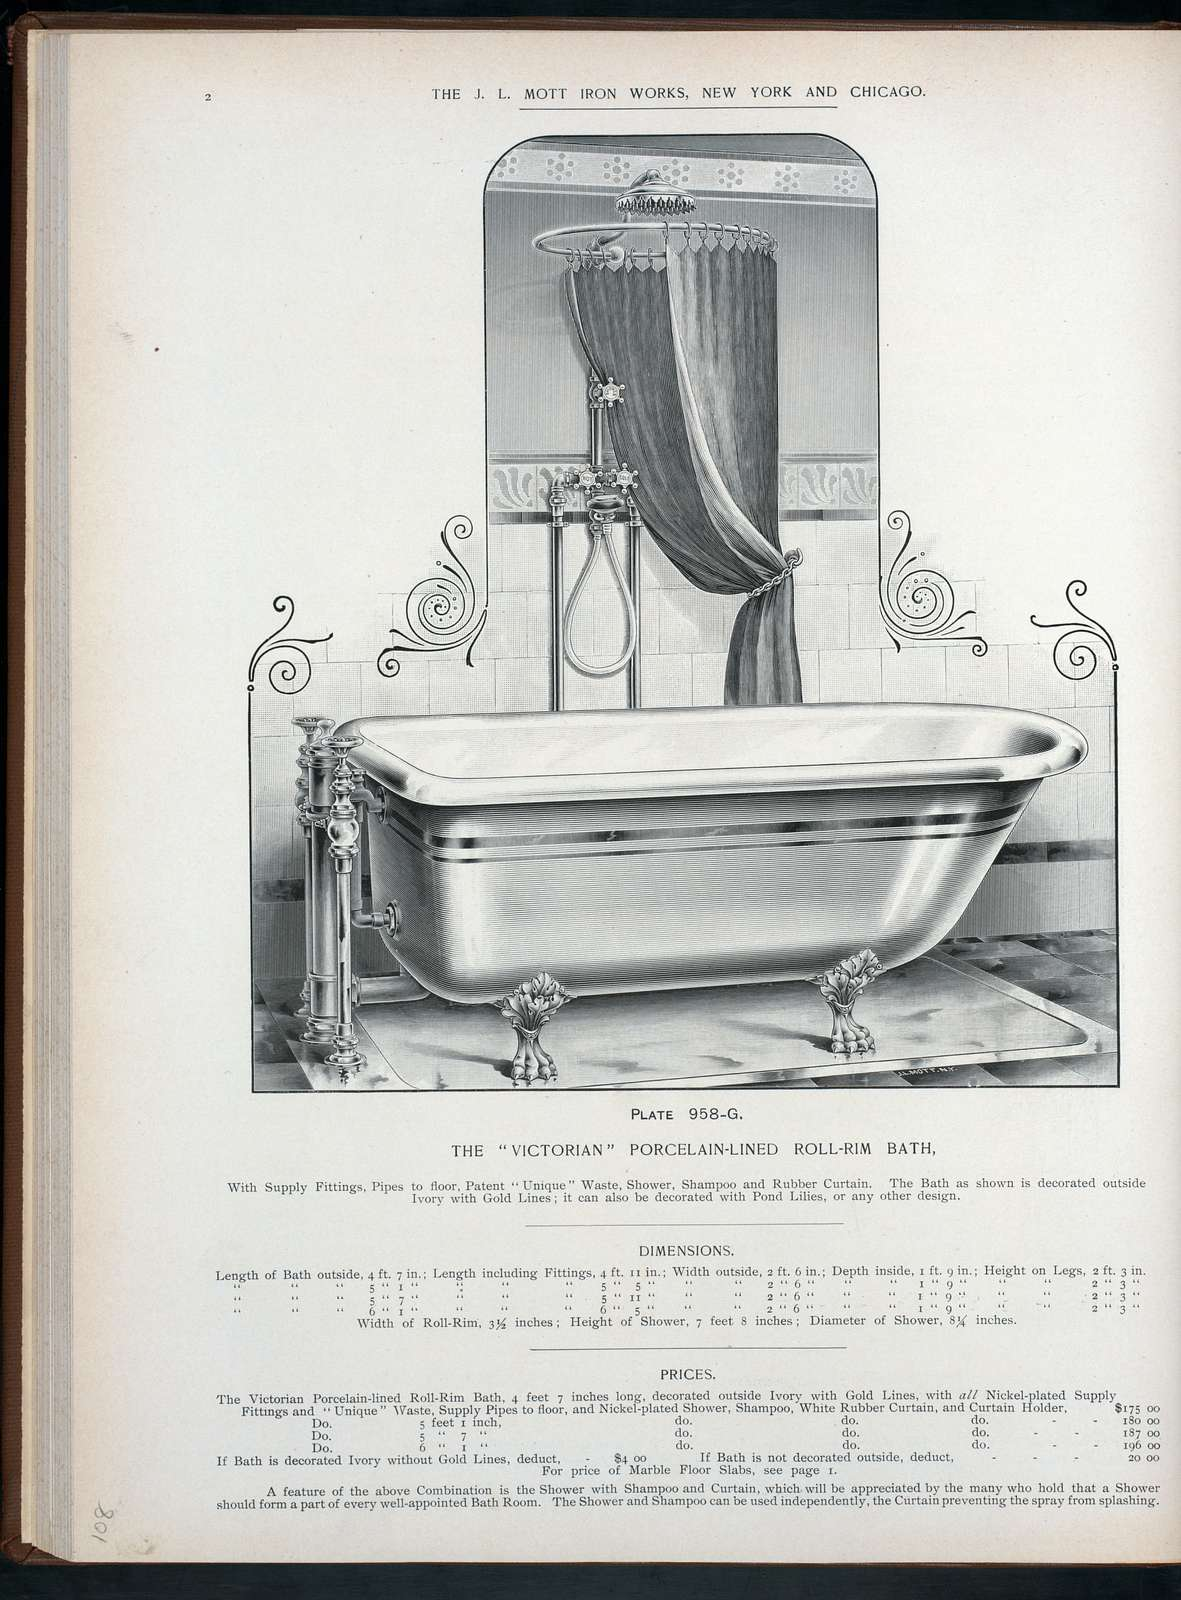 The 'Victorian' porcelain-lined roll-rim bath. Plate 958-G.